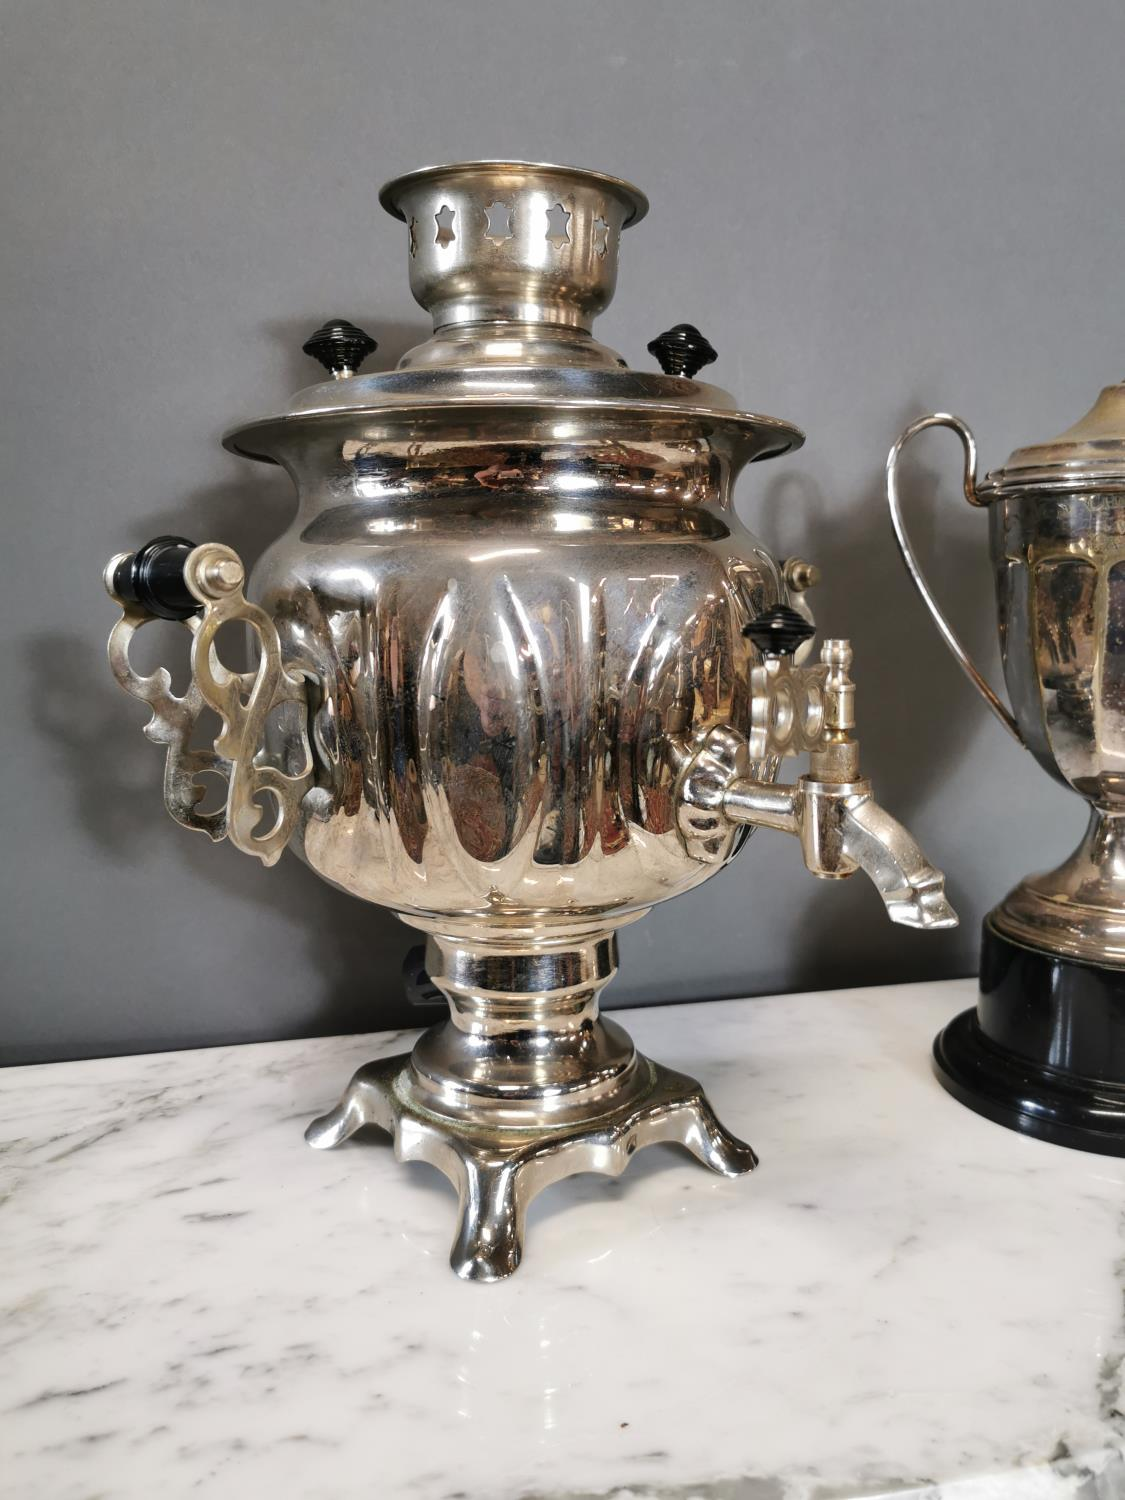 Early 20th. C. silverplated samovar - Image 2 of 3